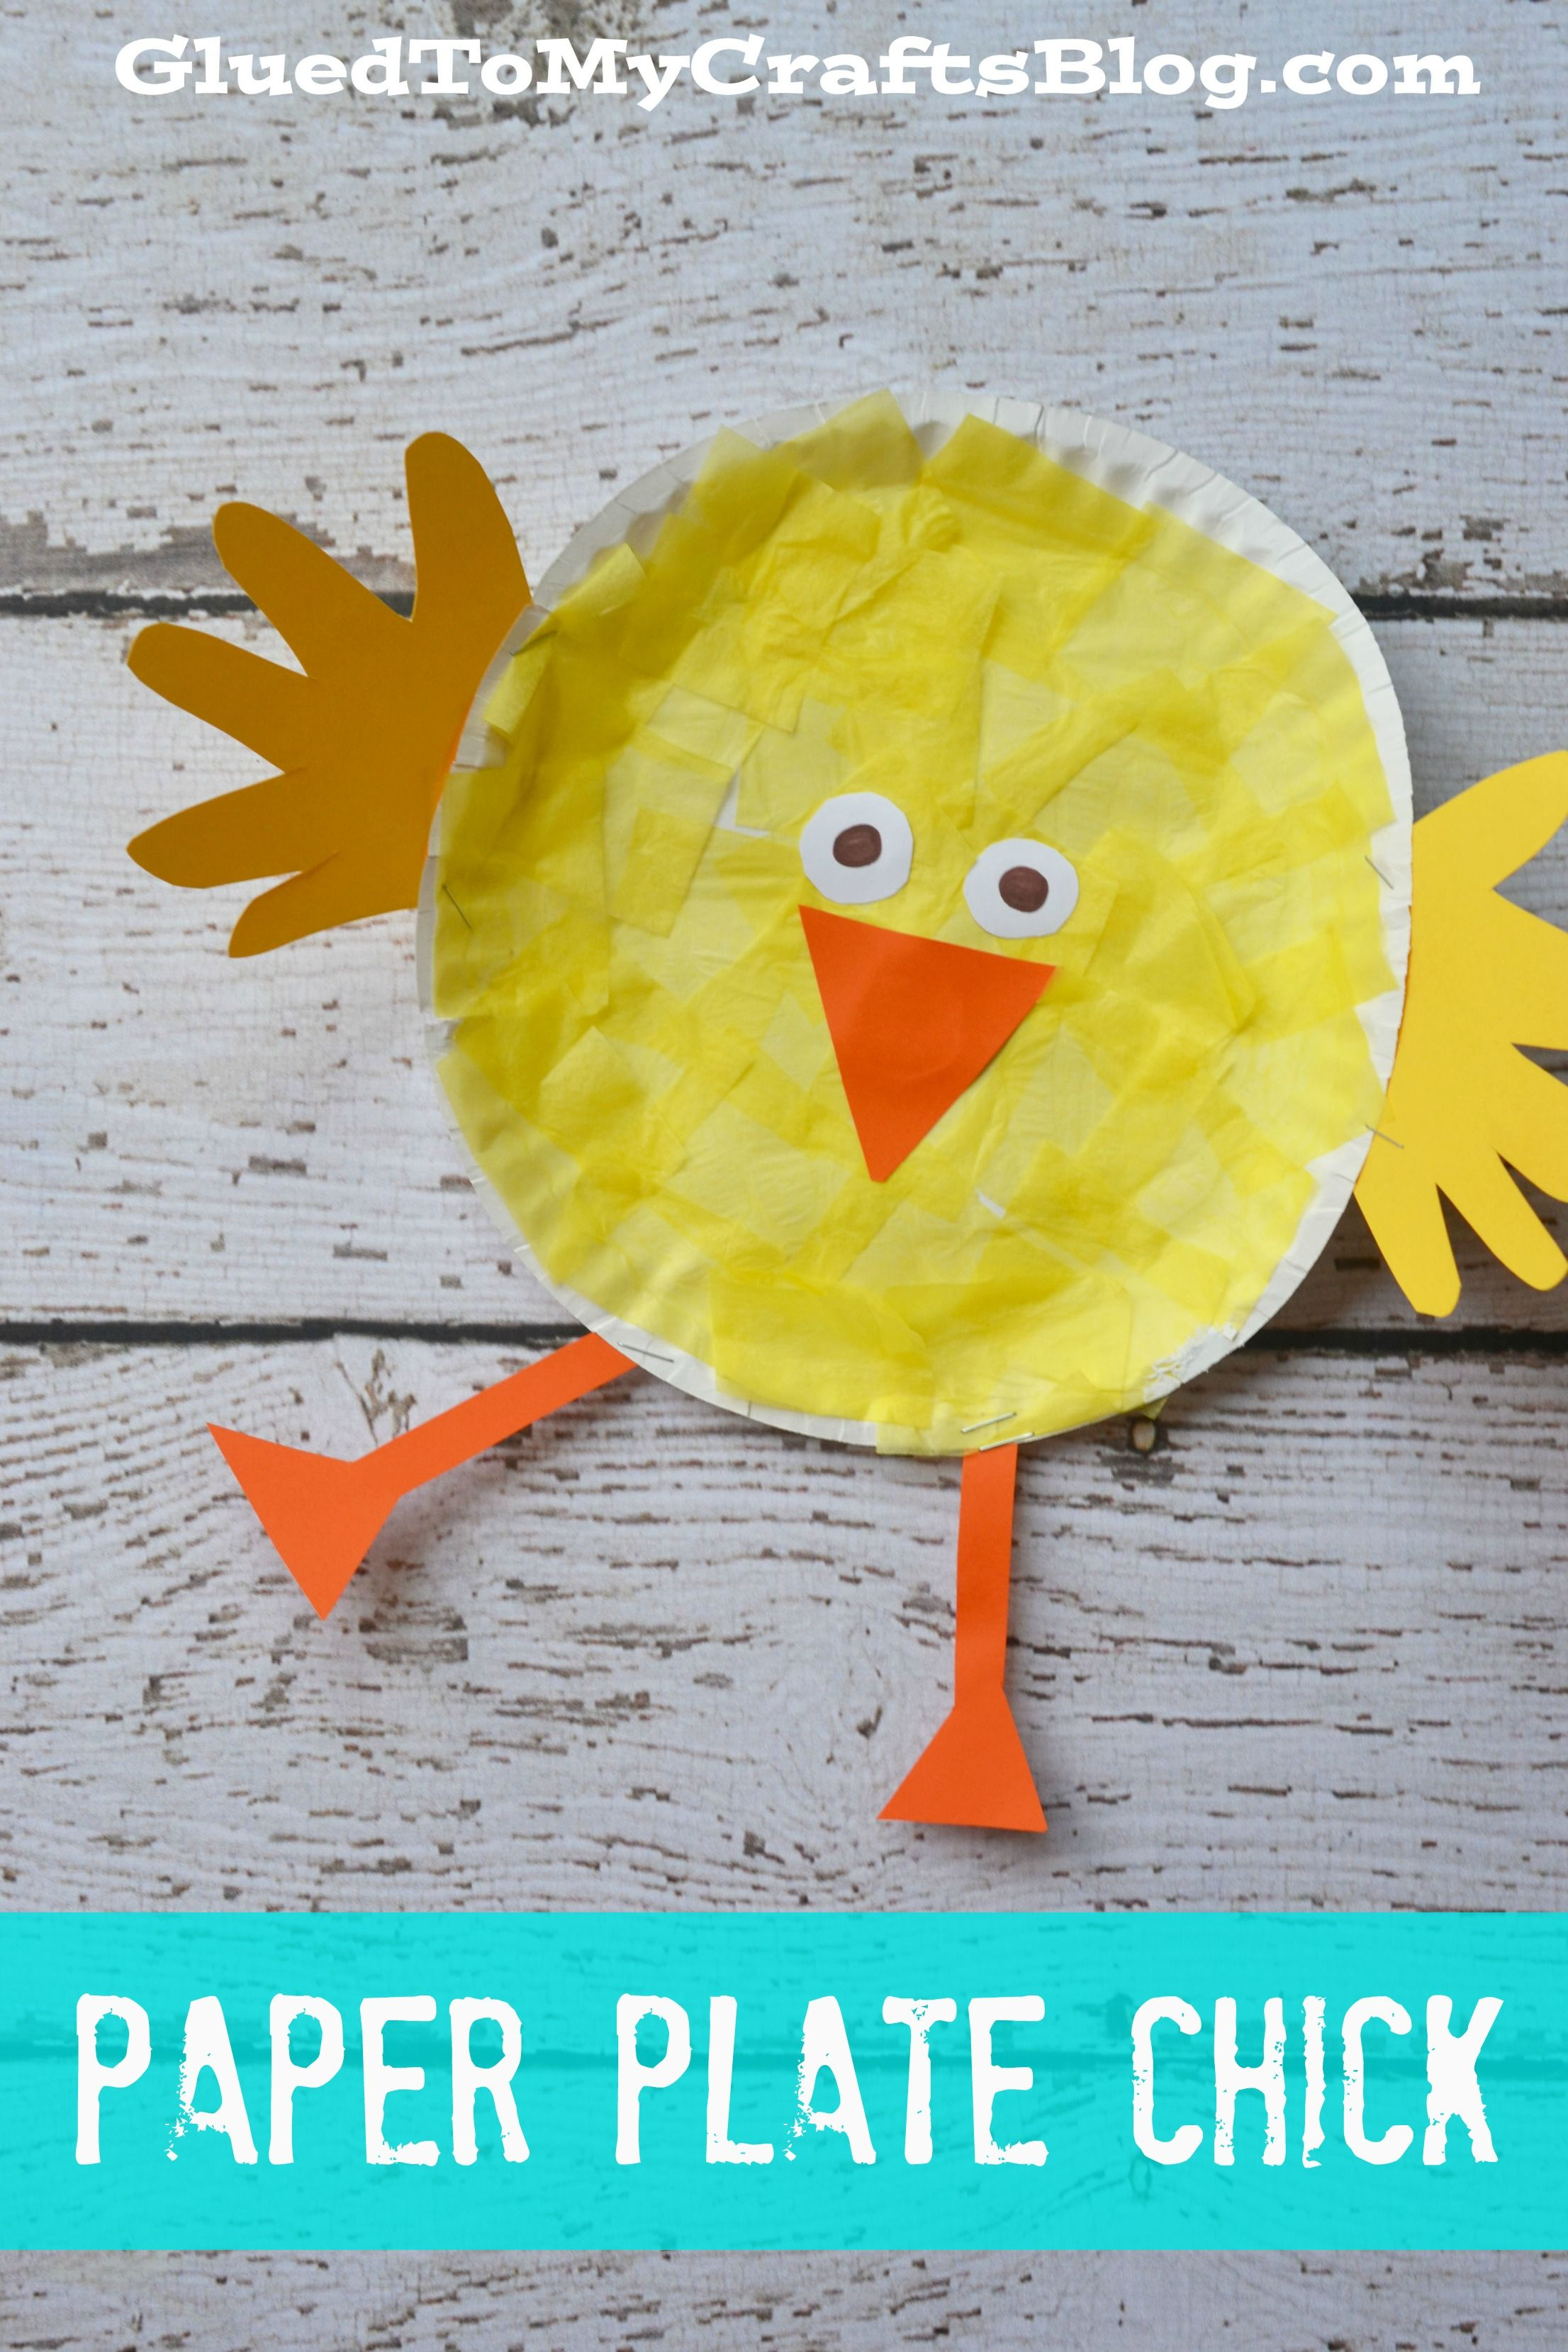 Paper Plate Chick Paper Plate Crafts For Kids Crafts